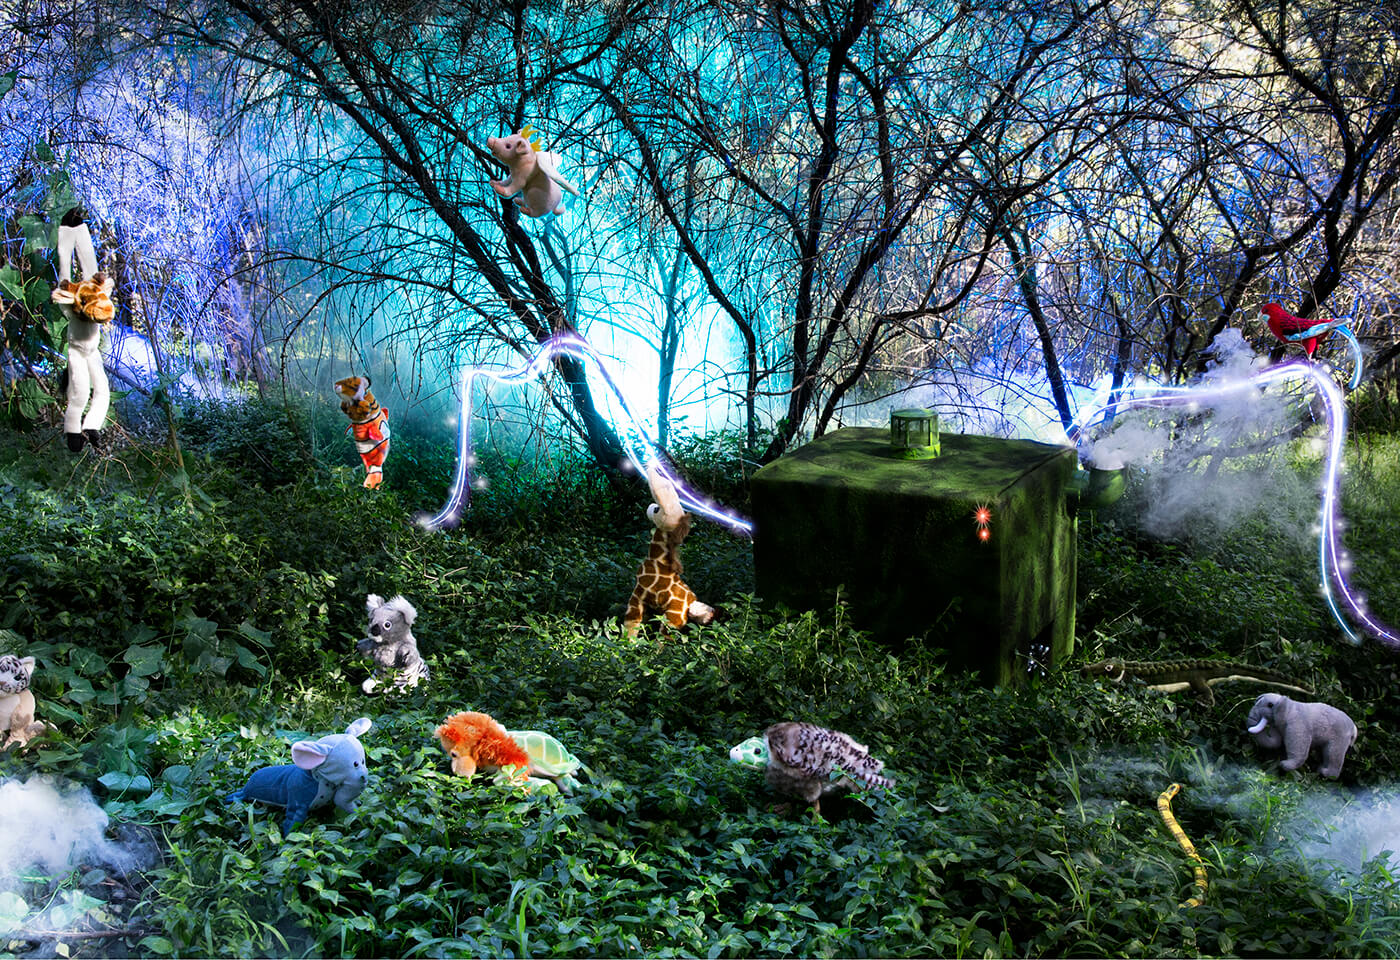 Image of stuffed animals in garden